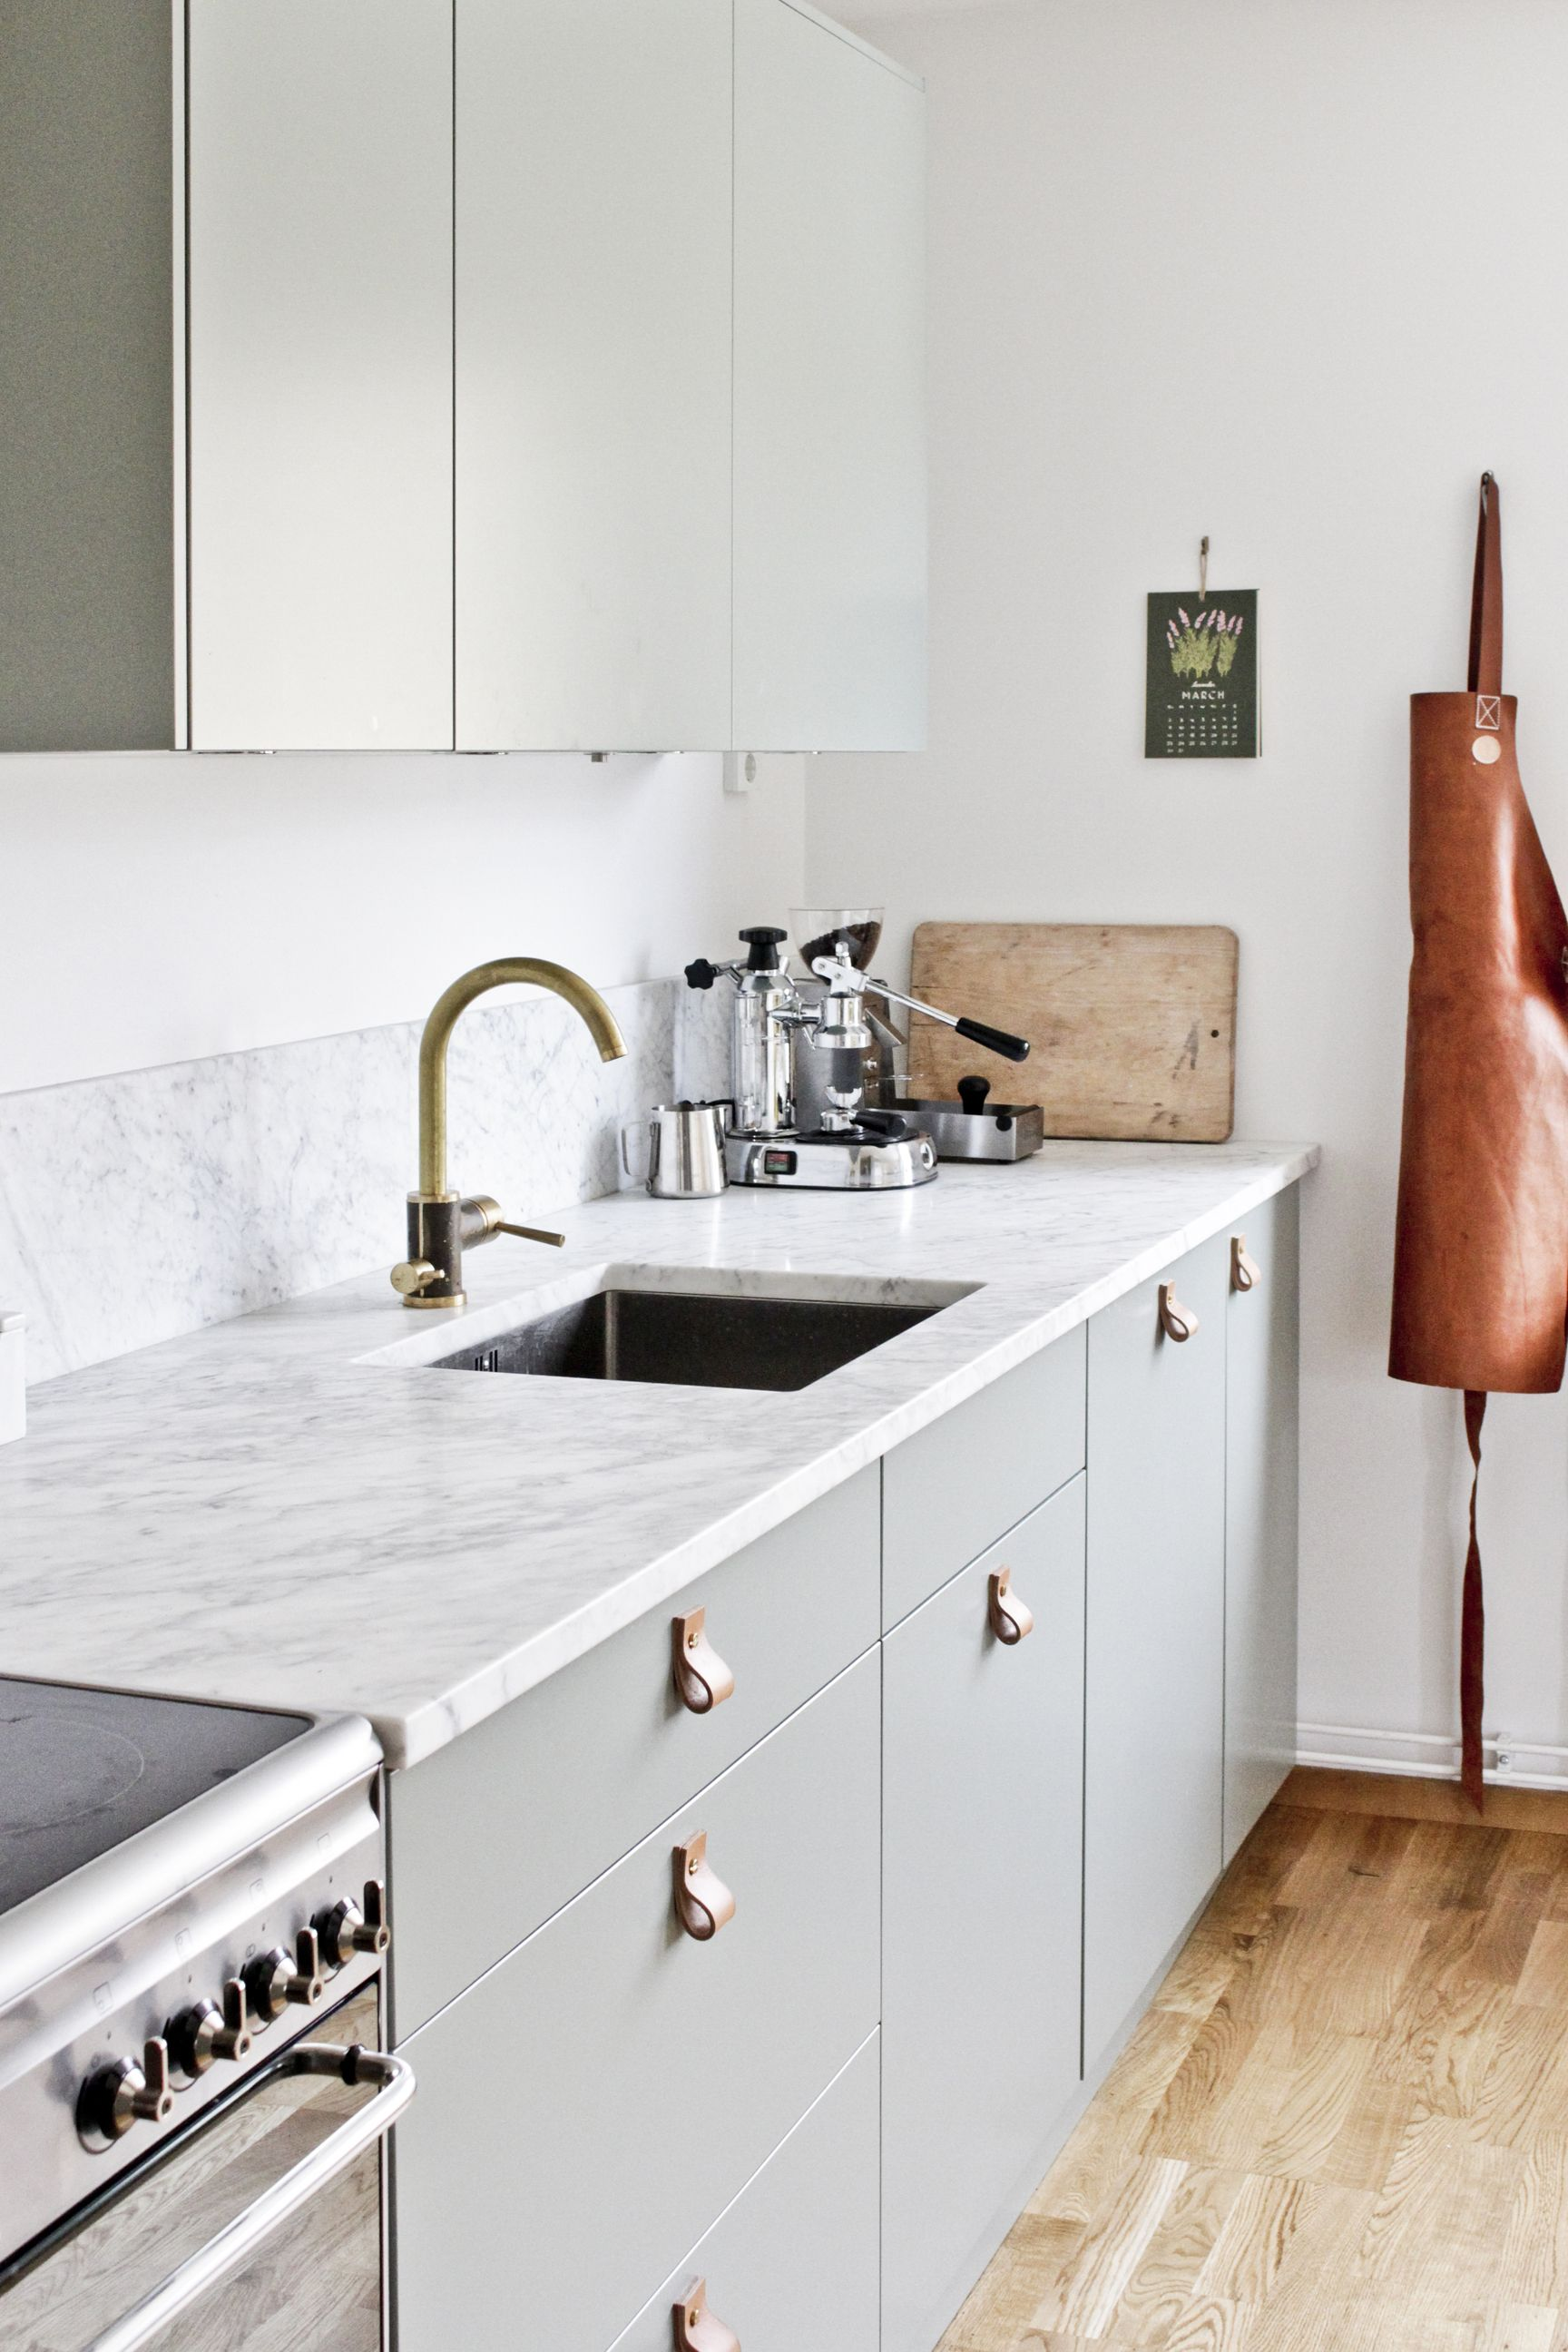 Green Fronts Marble Counter Top Smeg Stove Br Tap From Tapwell And Leather Handles